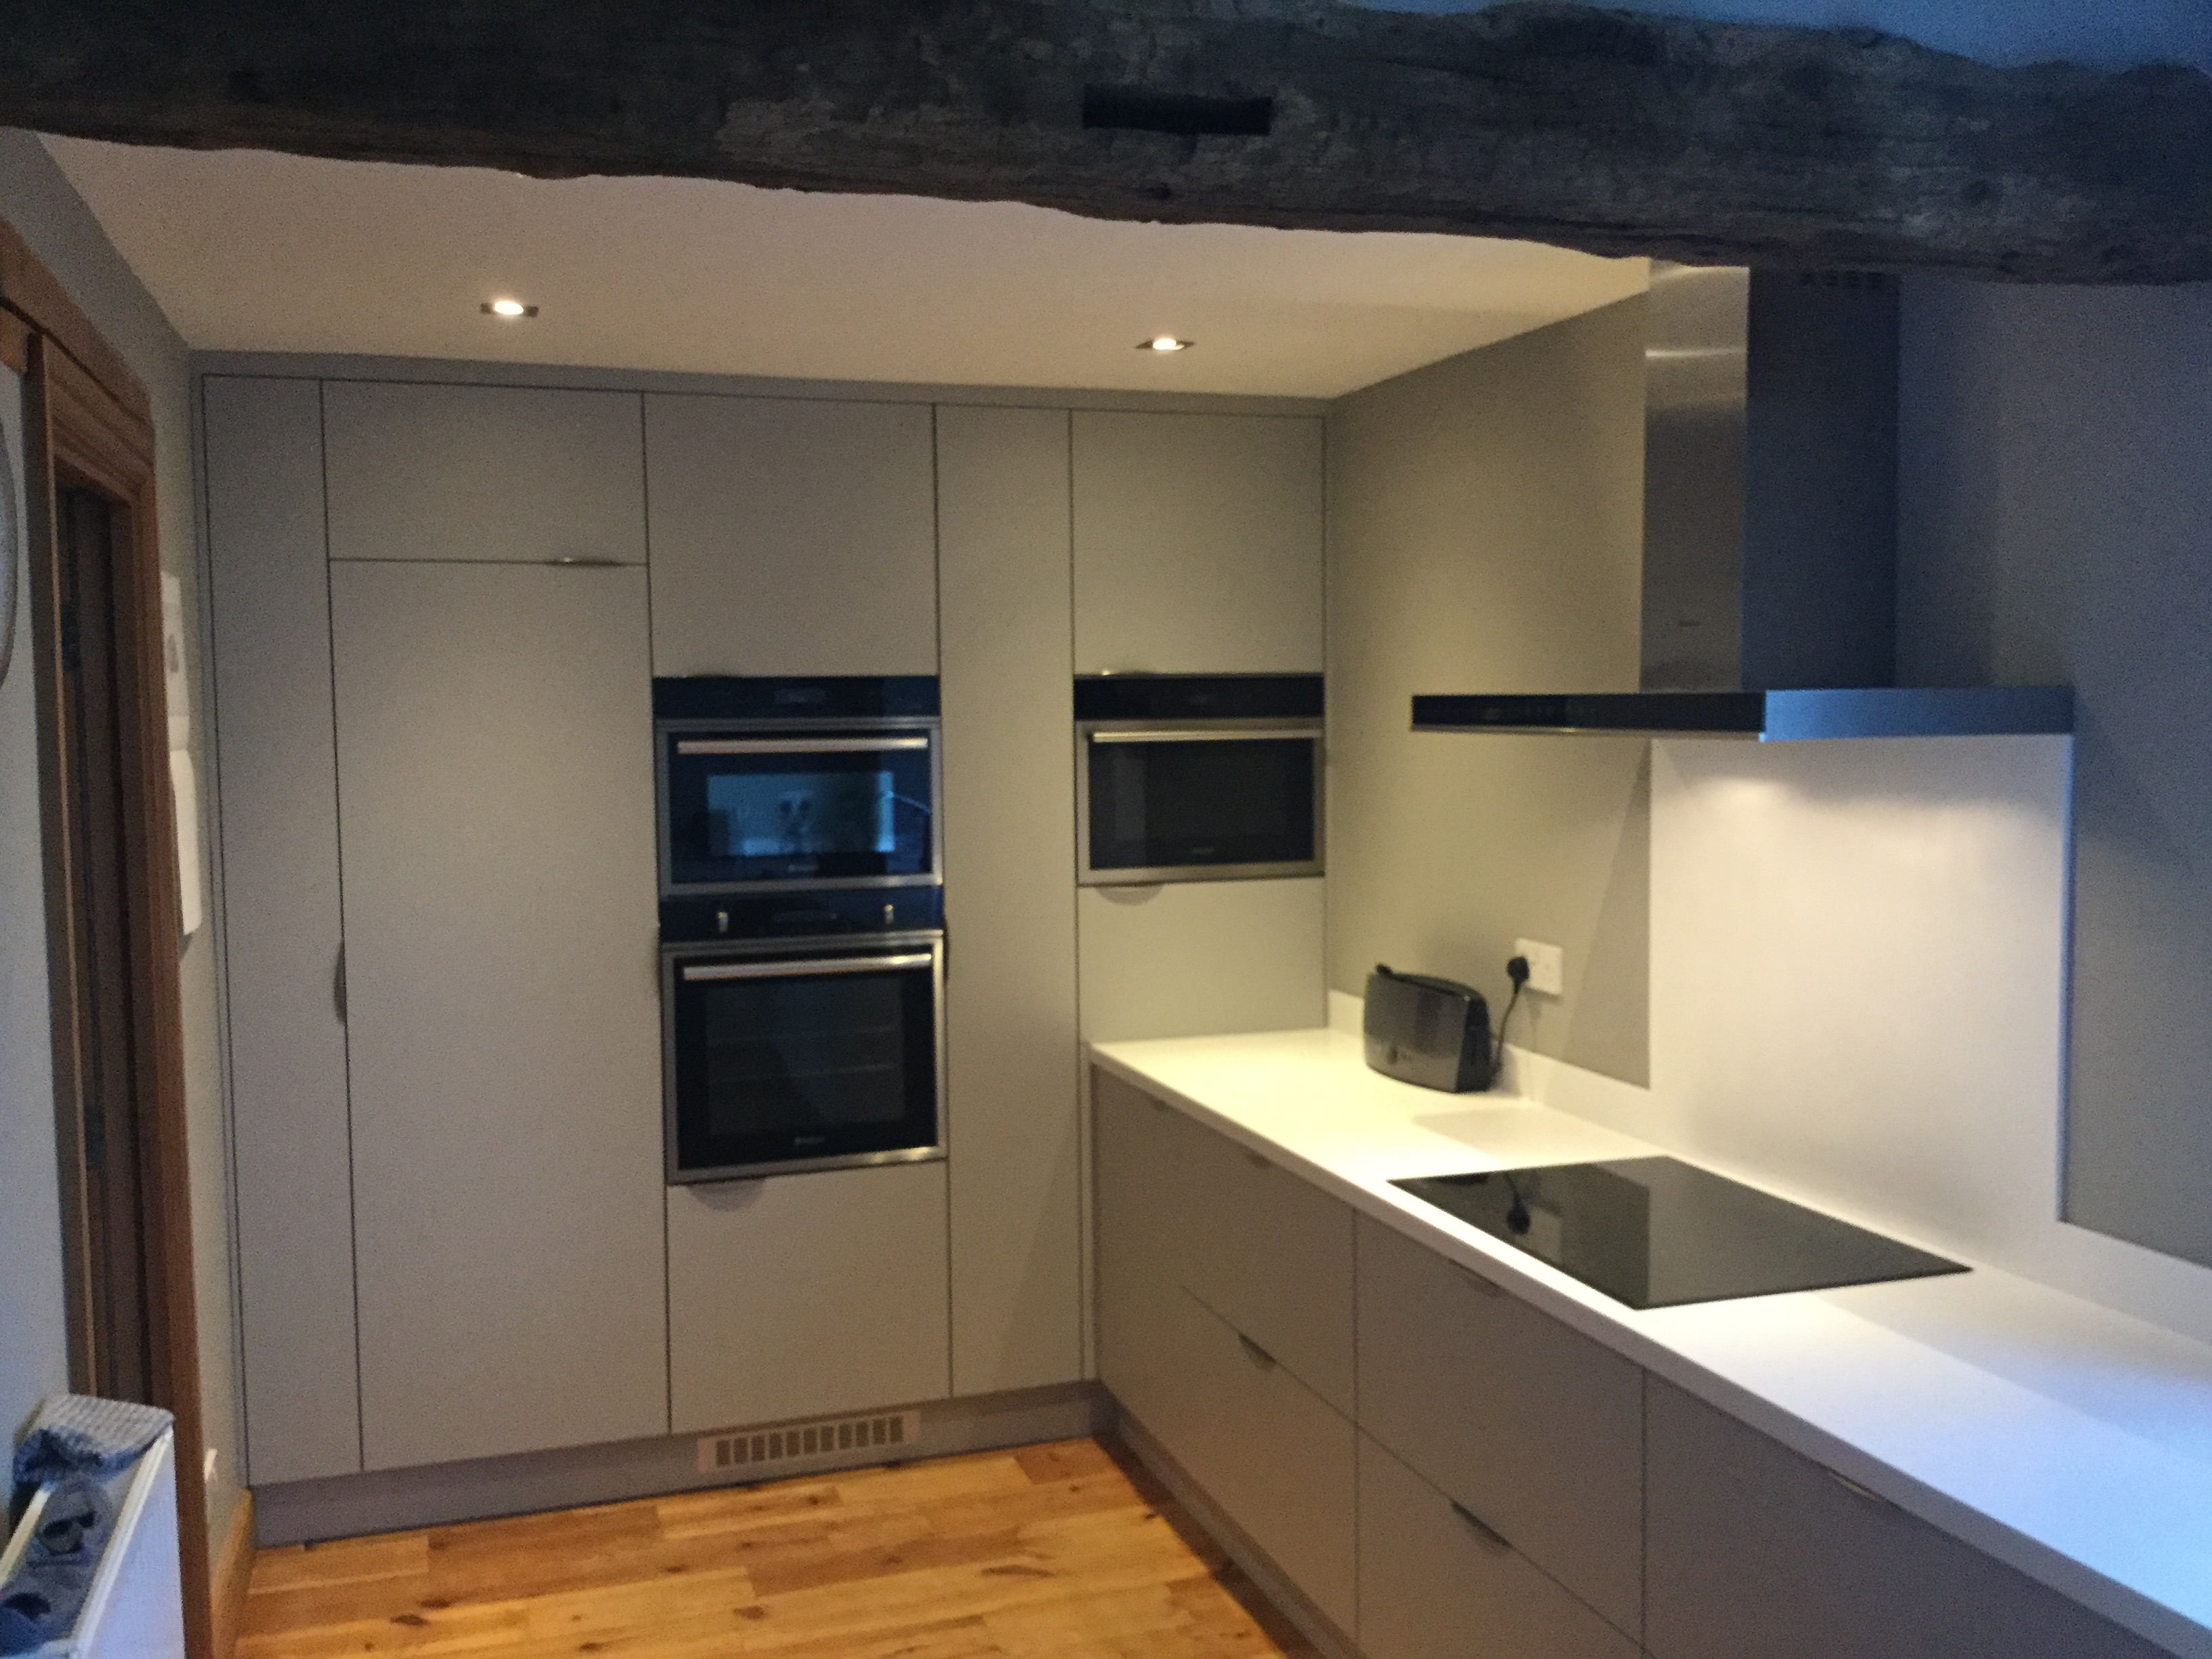 Corian solid surface fitted Halifax